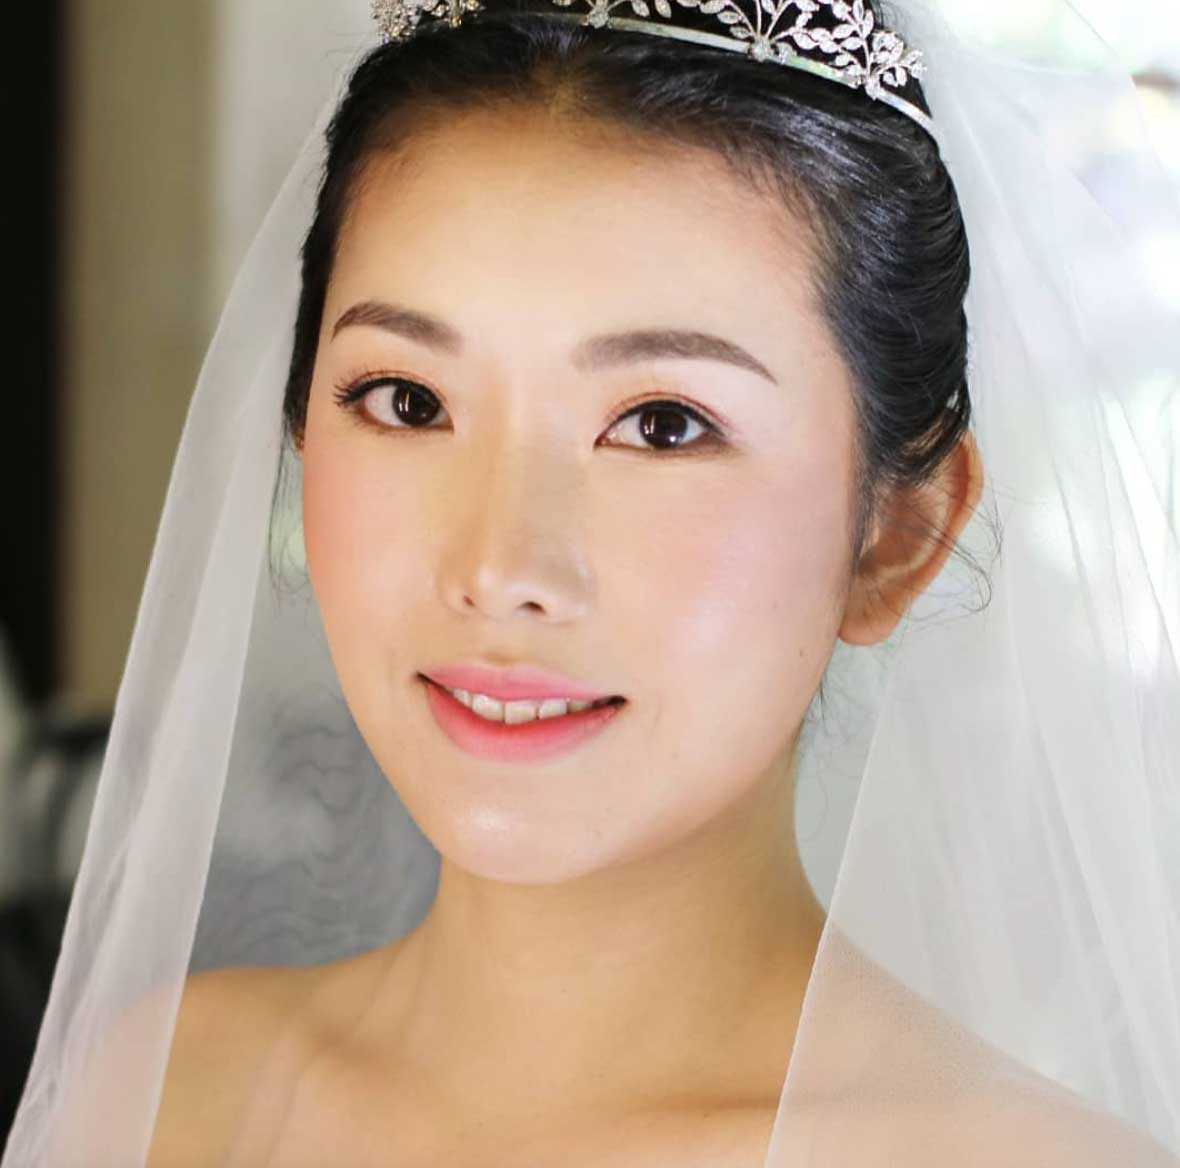 Natural Makeup & Hair for Bride On Wedding Day-11